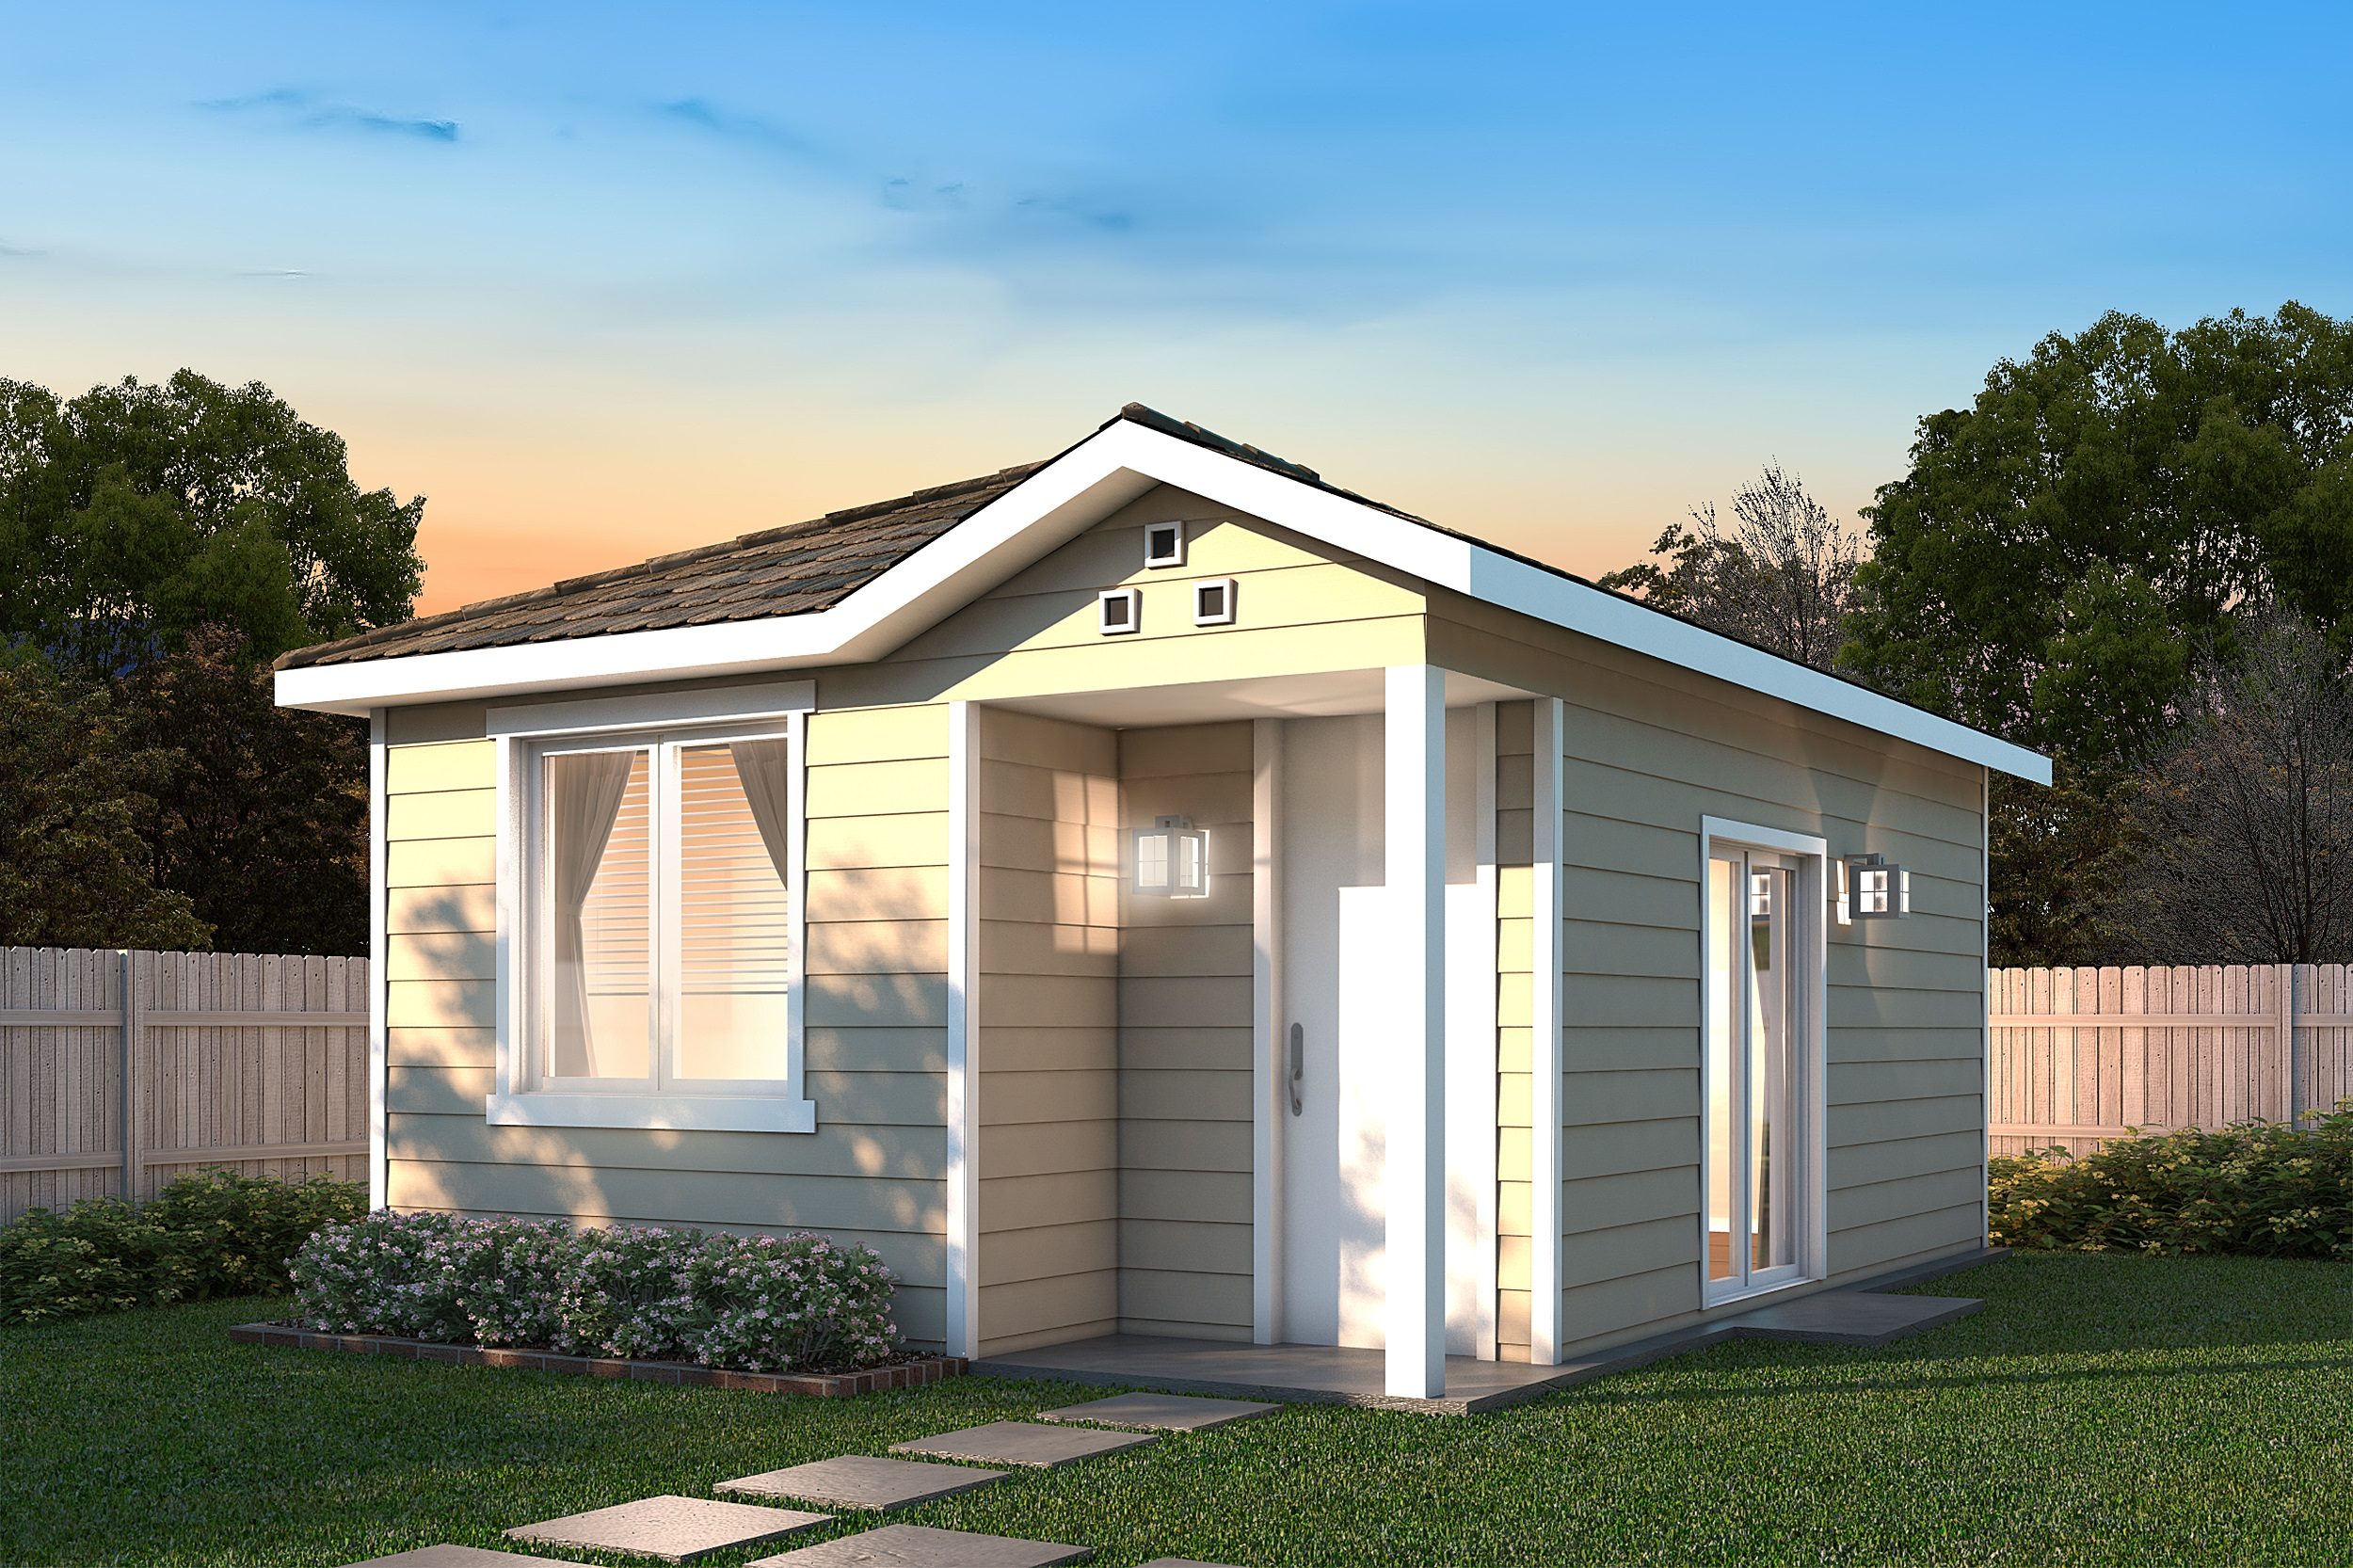 g j gardner homes debuts 10 new granny flat designs